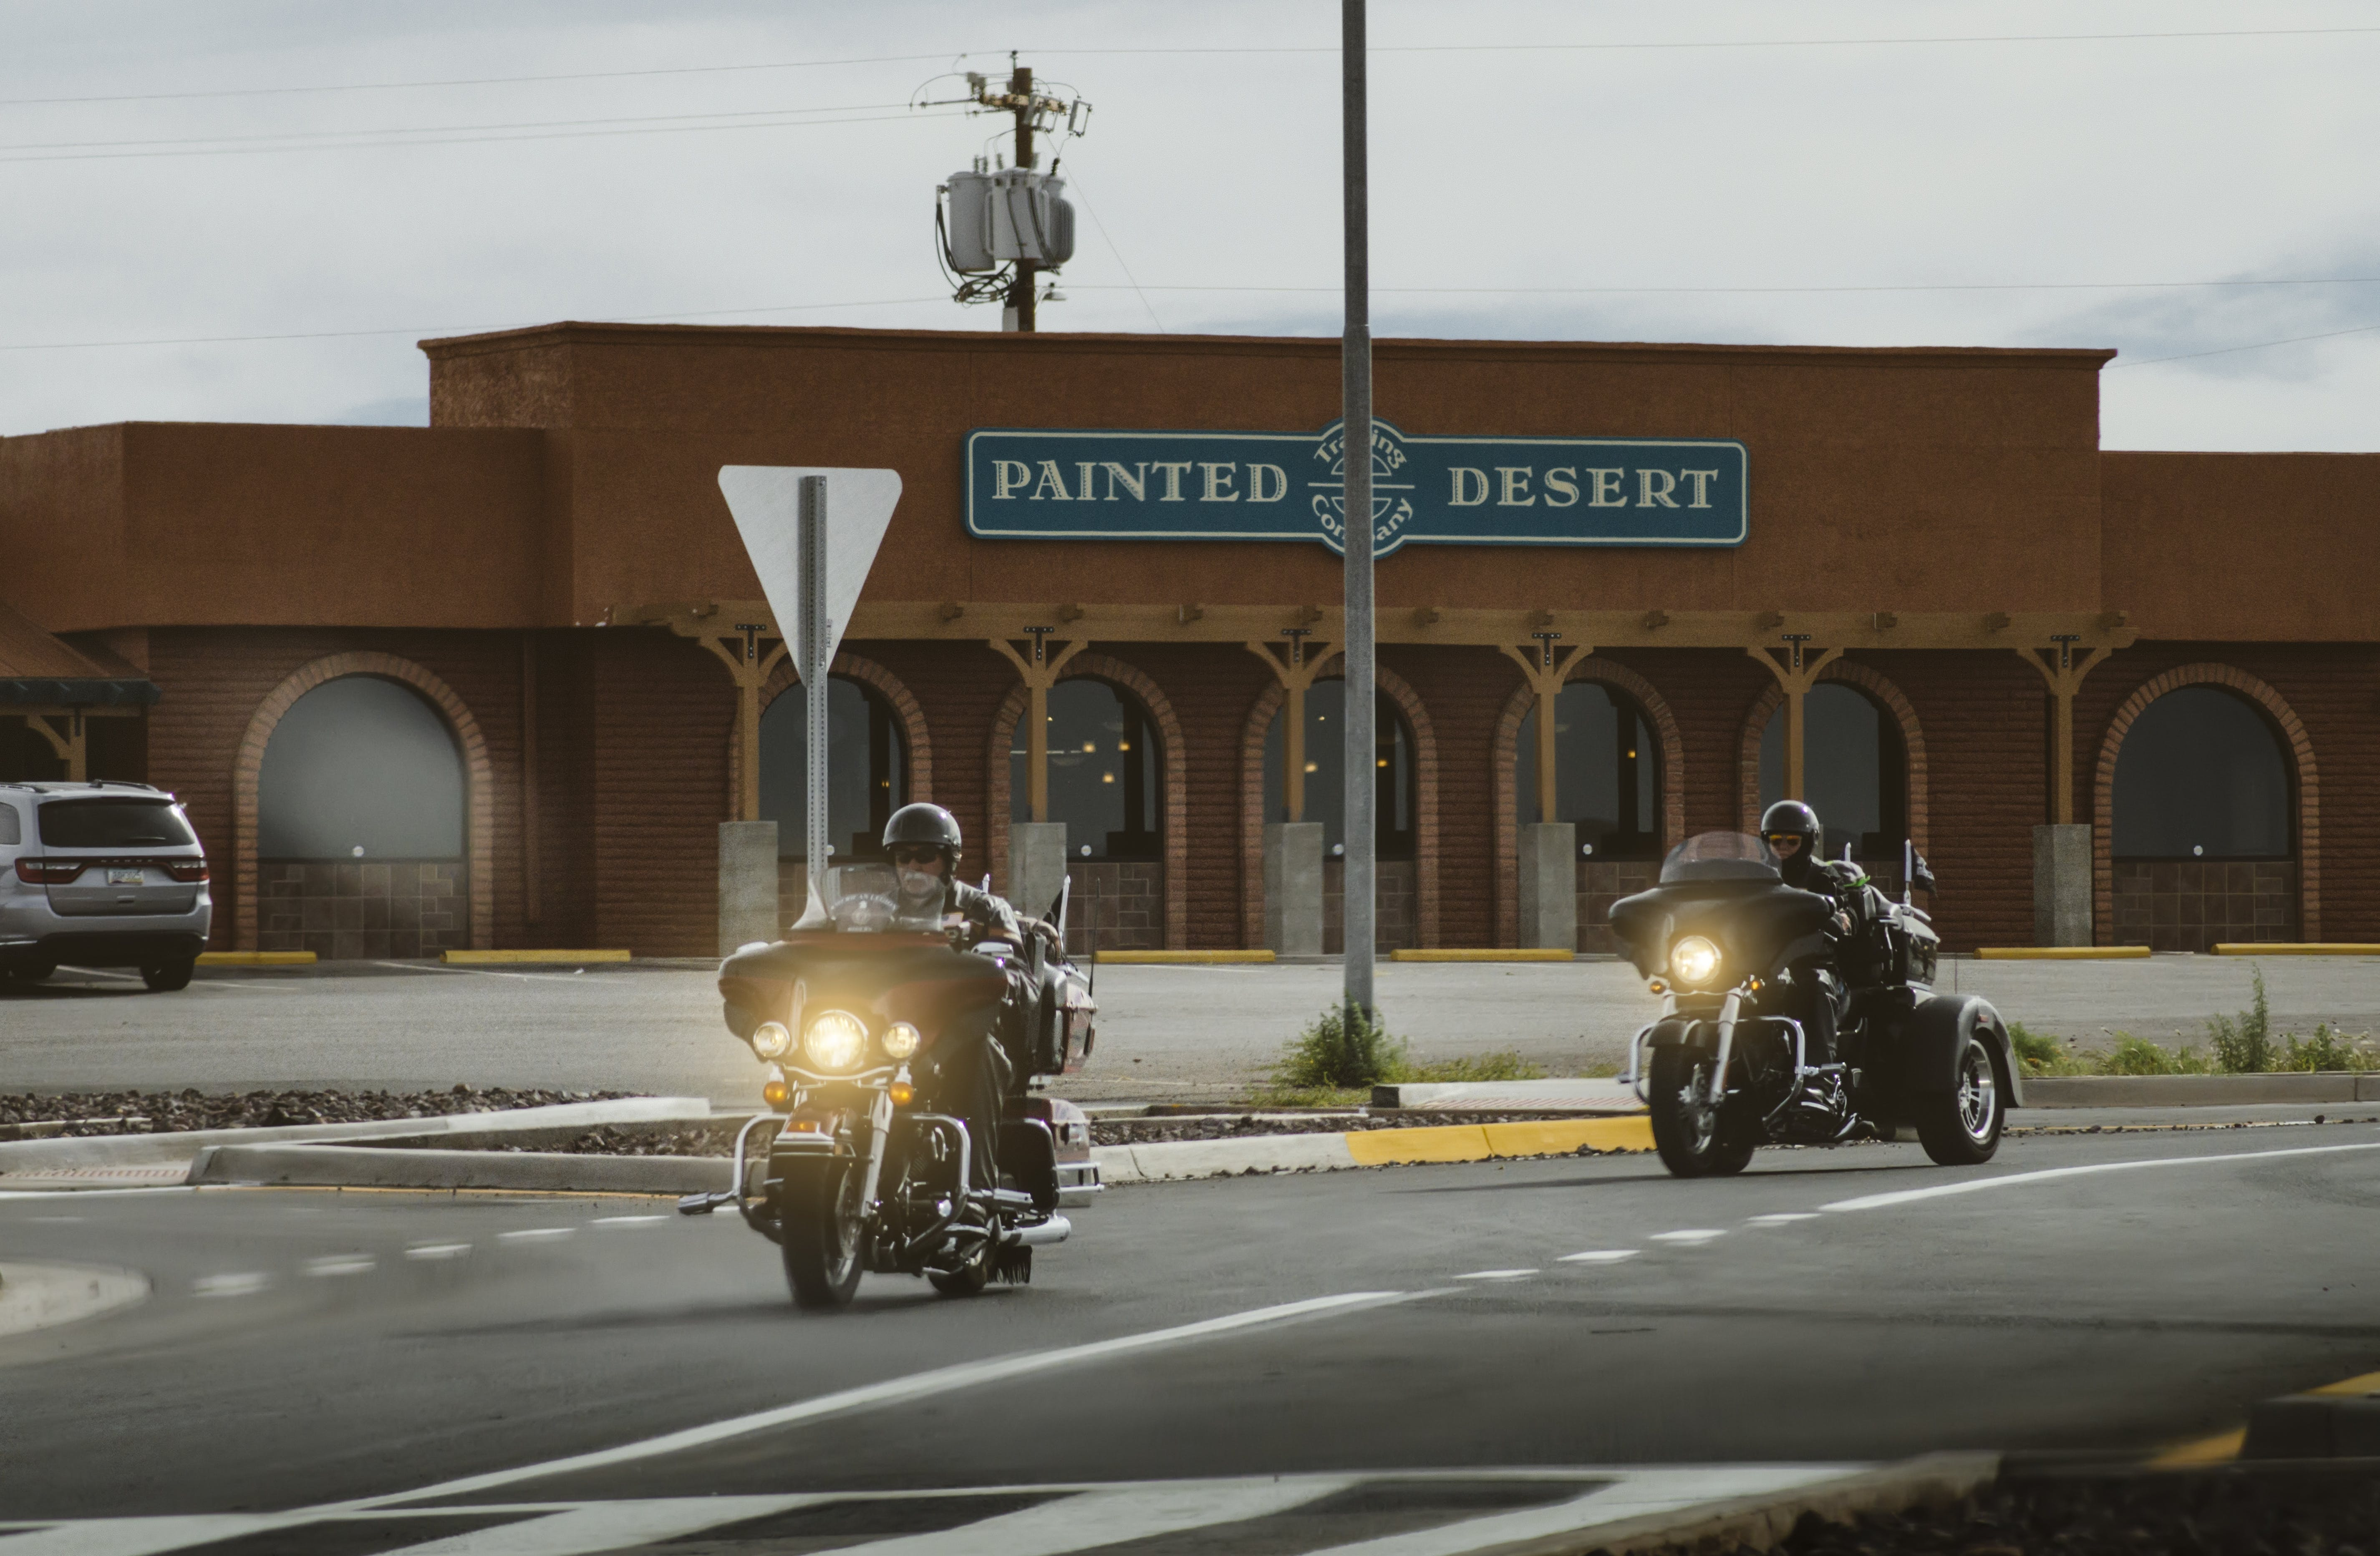 Two Men Riding on Touring Motorcycle Near Painted Desert Store